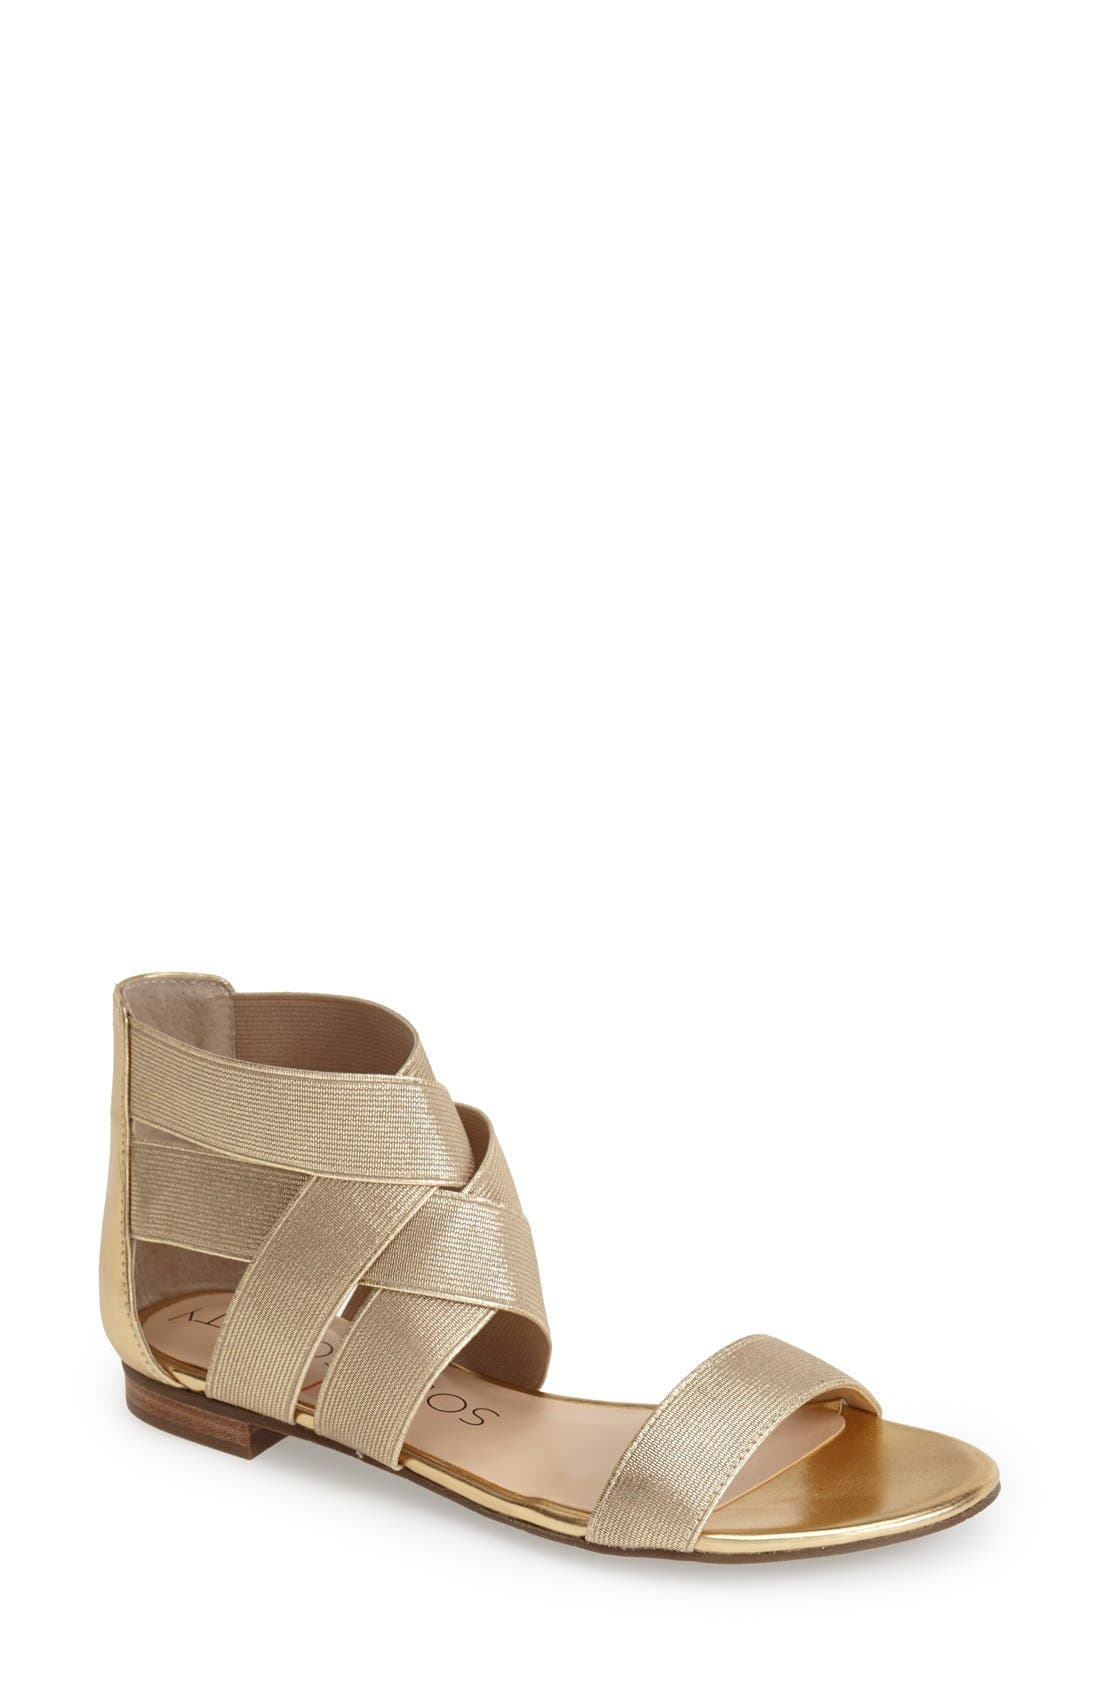 Main Image - Sole Society 'Aggie' Ankle Strap Sandal (Women)